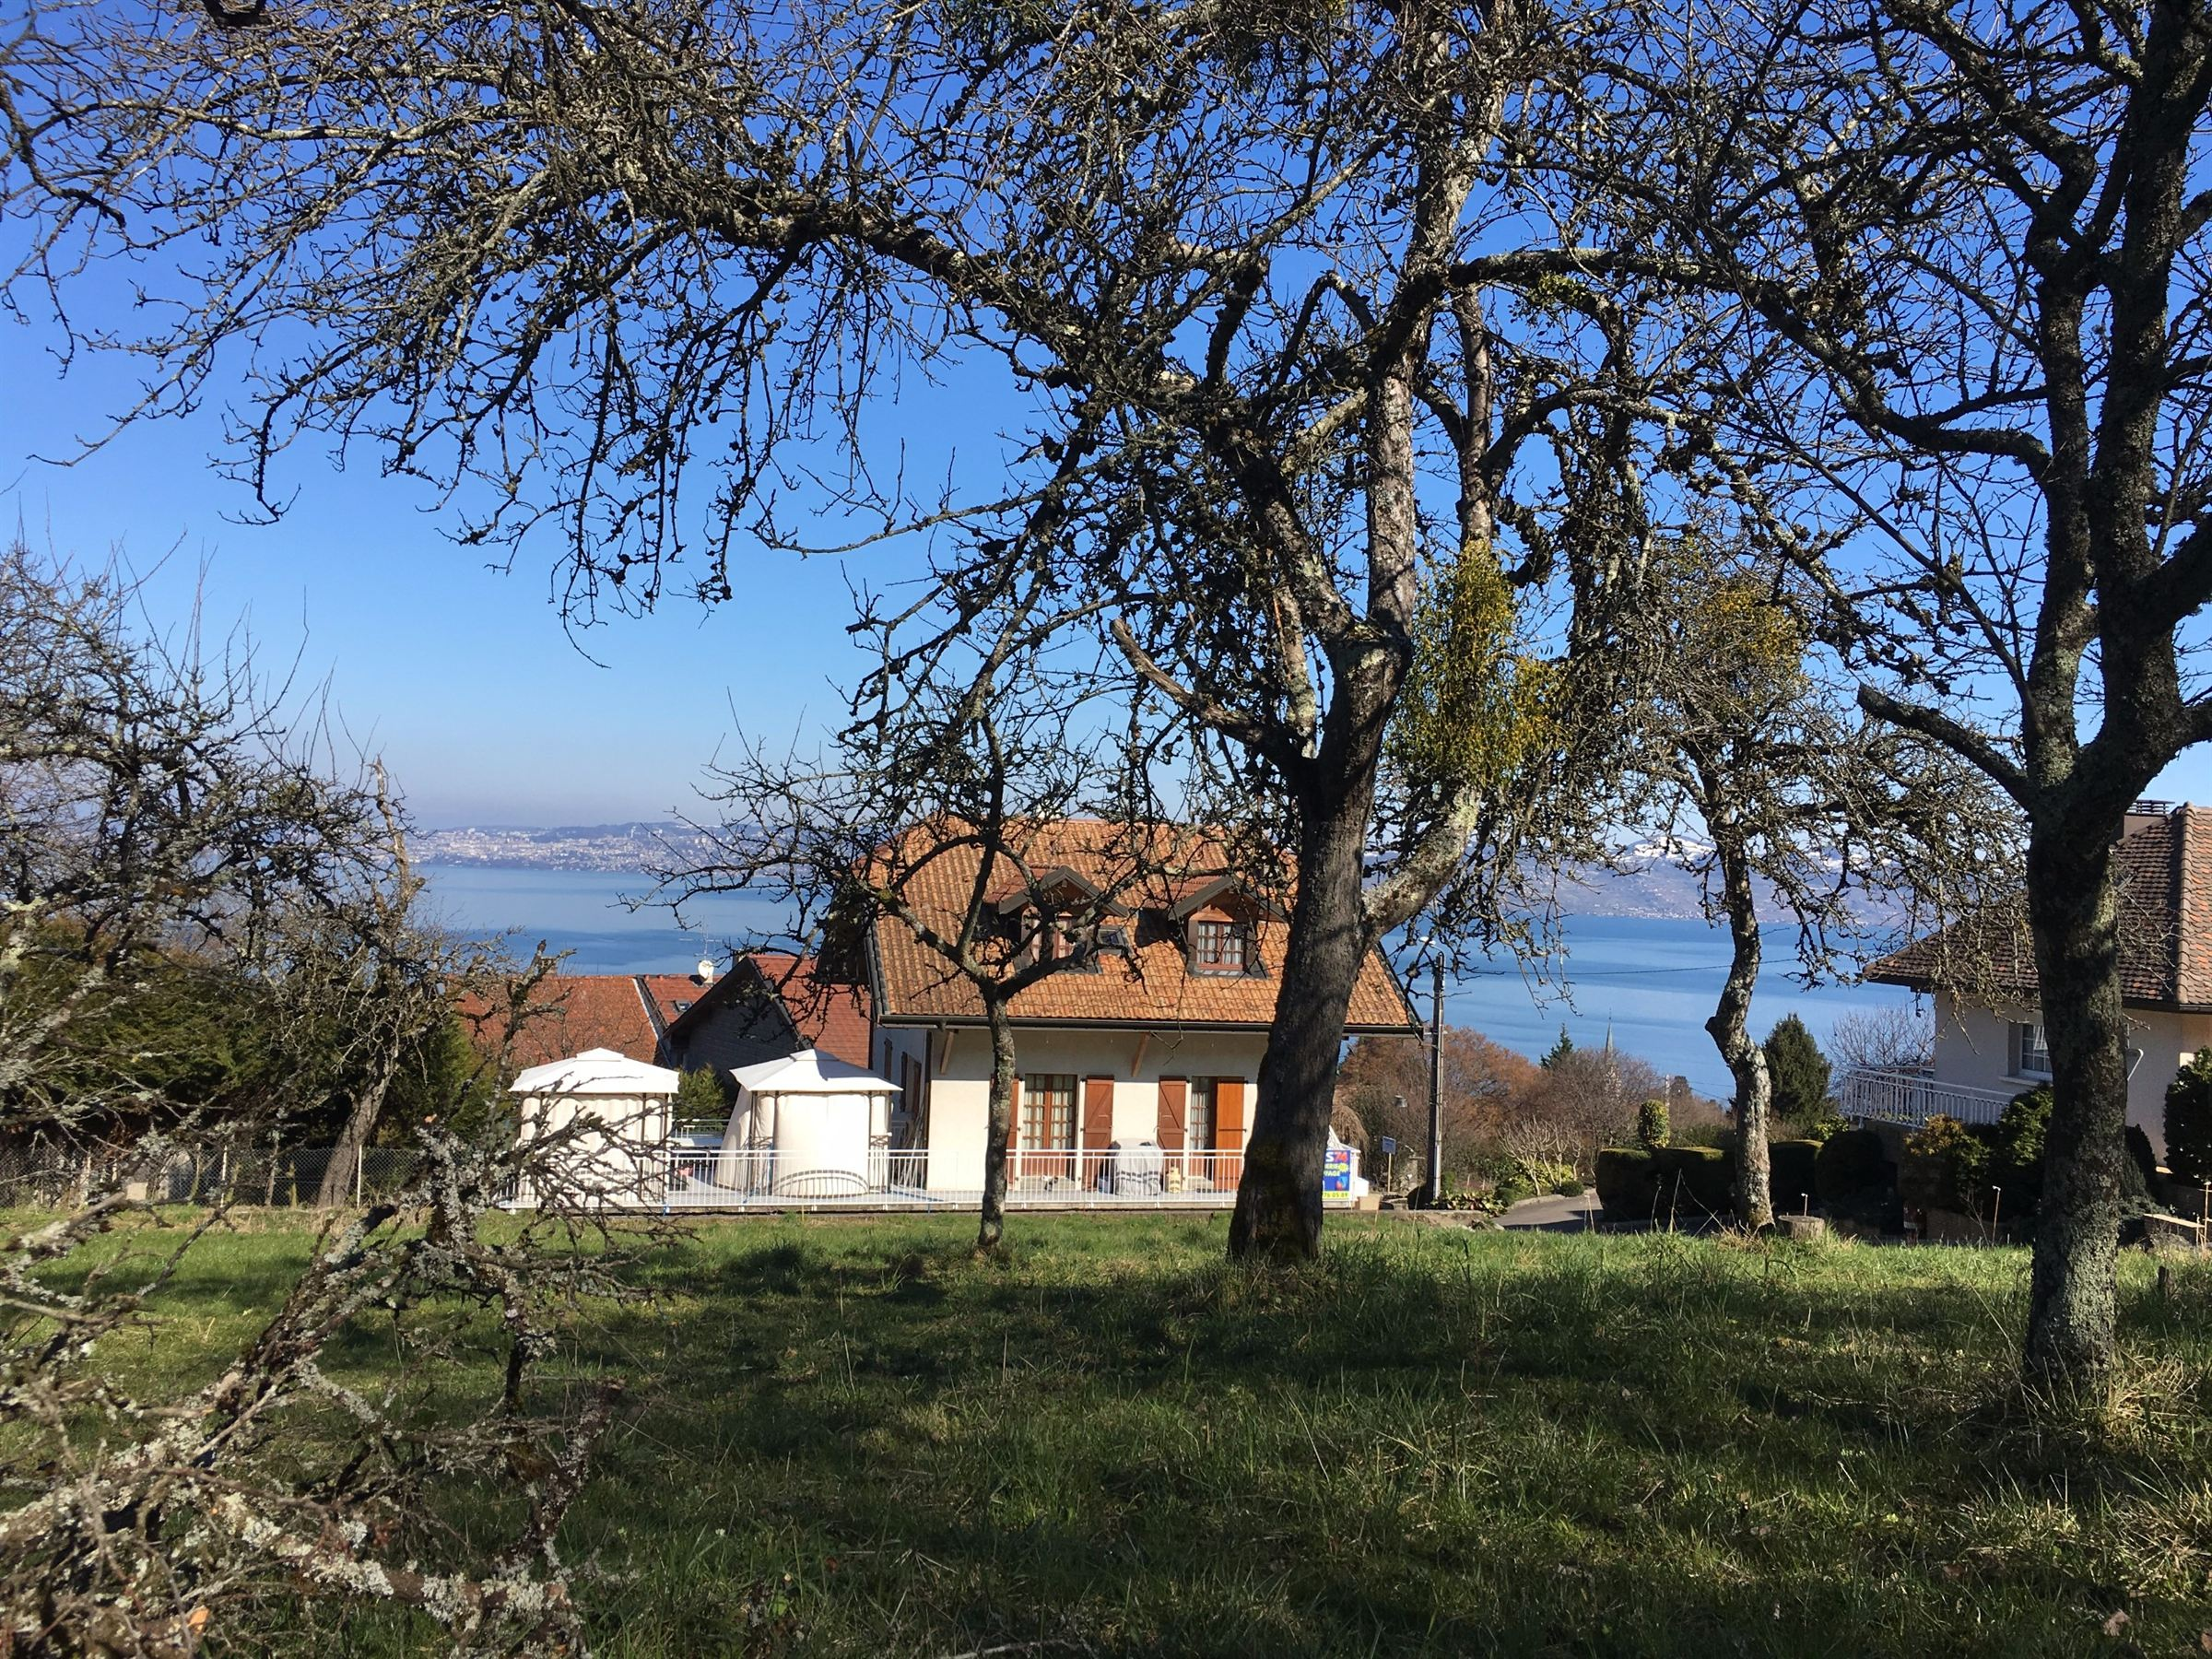 Land for Sale at NEAR EVIAN : LUGRIN PLOT of 898 m2 Lugrin, Rhone-Alpes, 74500 France